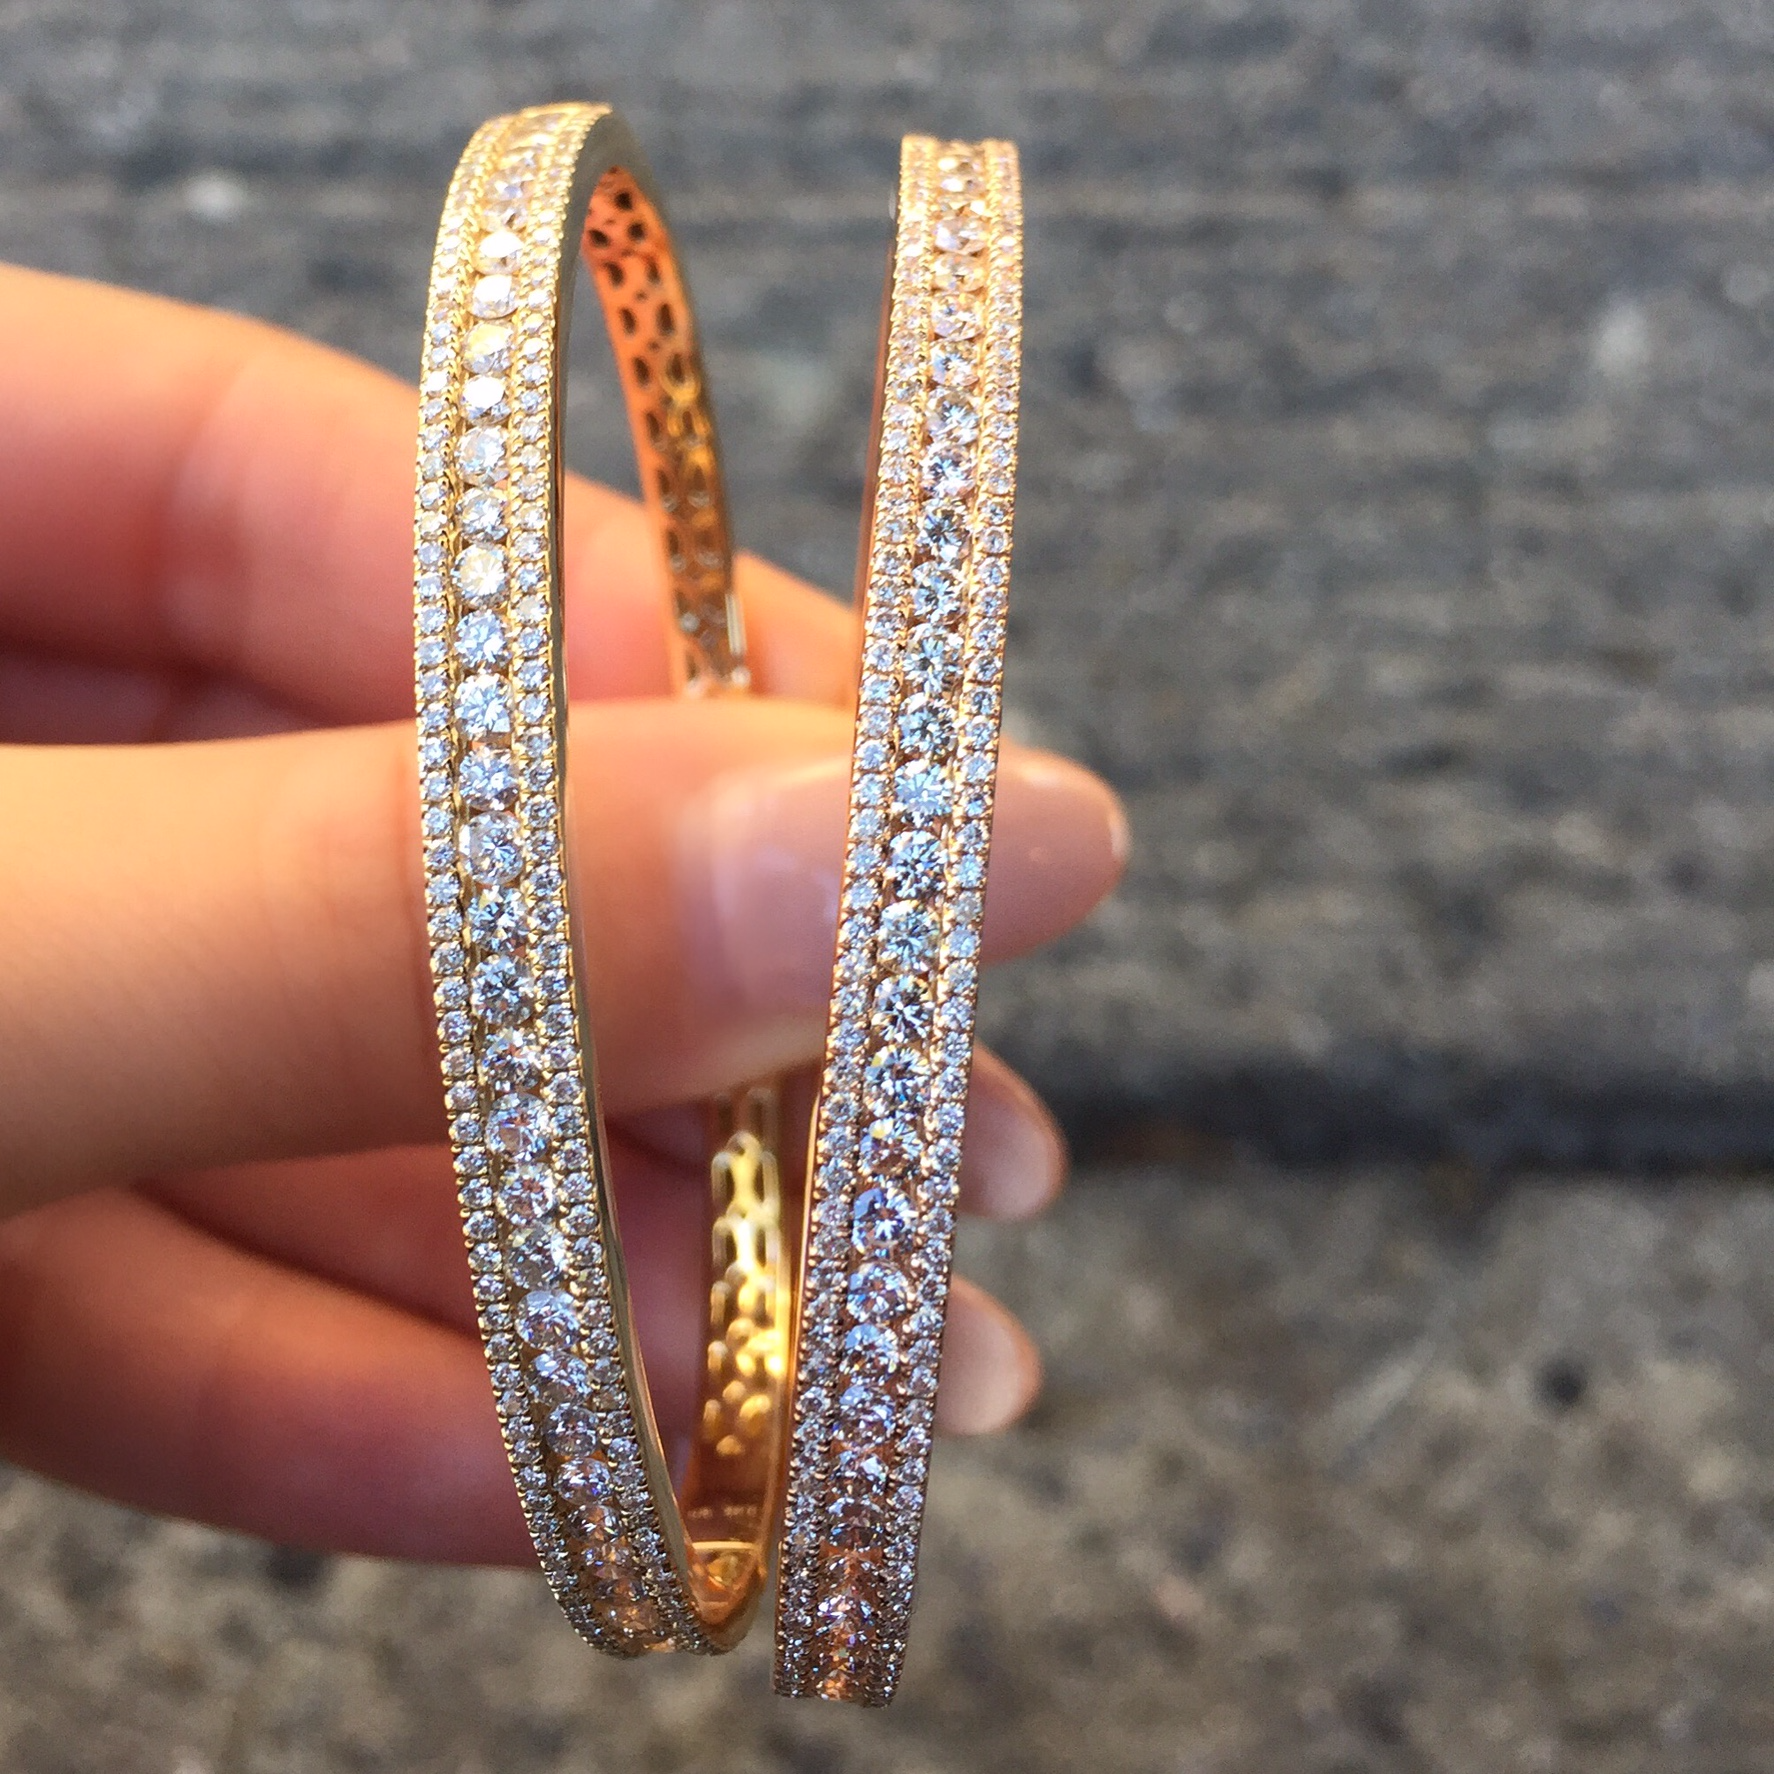 bracelets bangle yellow tw rose bar earrings blue gold sapphire stackable bangles bracelet couture new band bella pave gorgeous fine white diamond carat ring necklace